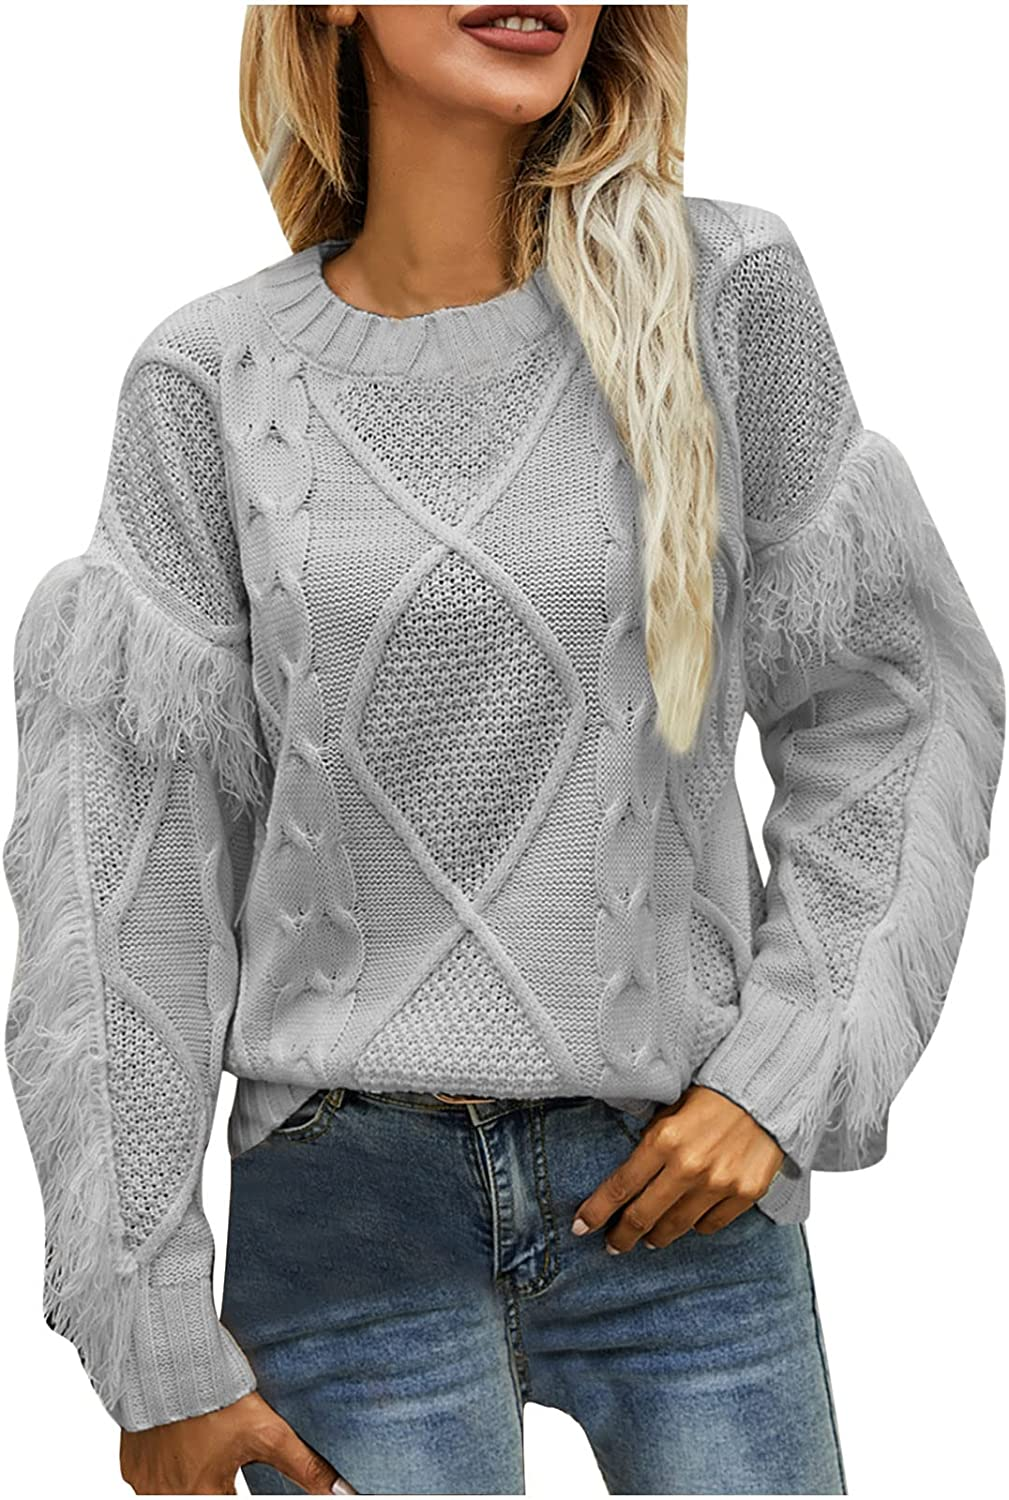 Women's Plush Tassel Sweater Cable Knit Crew Neck Jumper Long Sleeve Solid Color Sweater Casual Pullover Blouses Tops